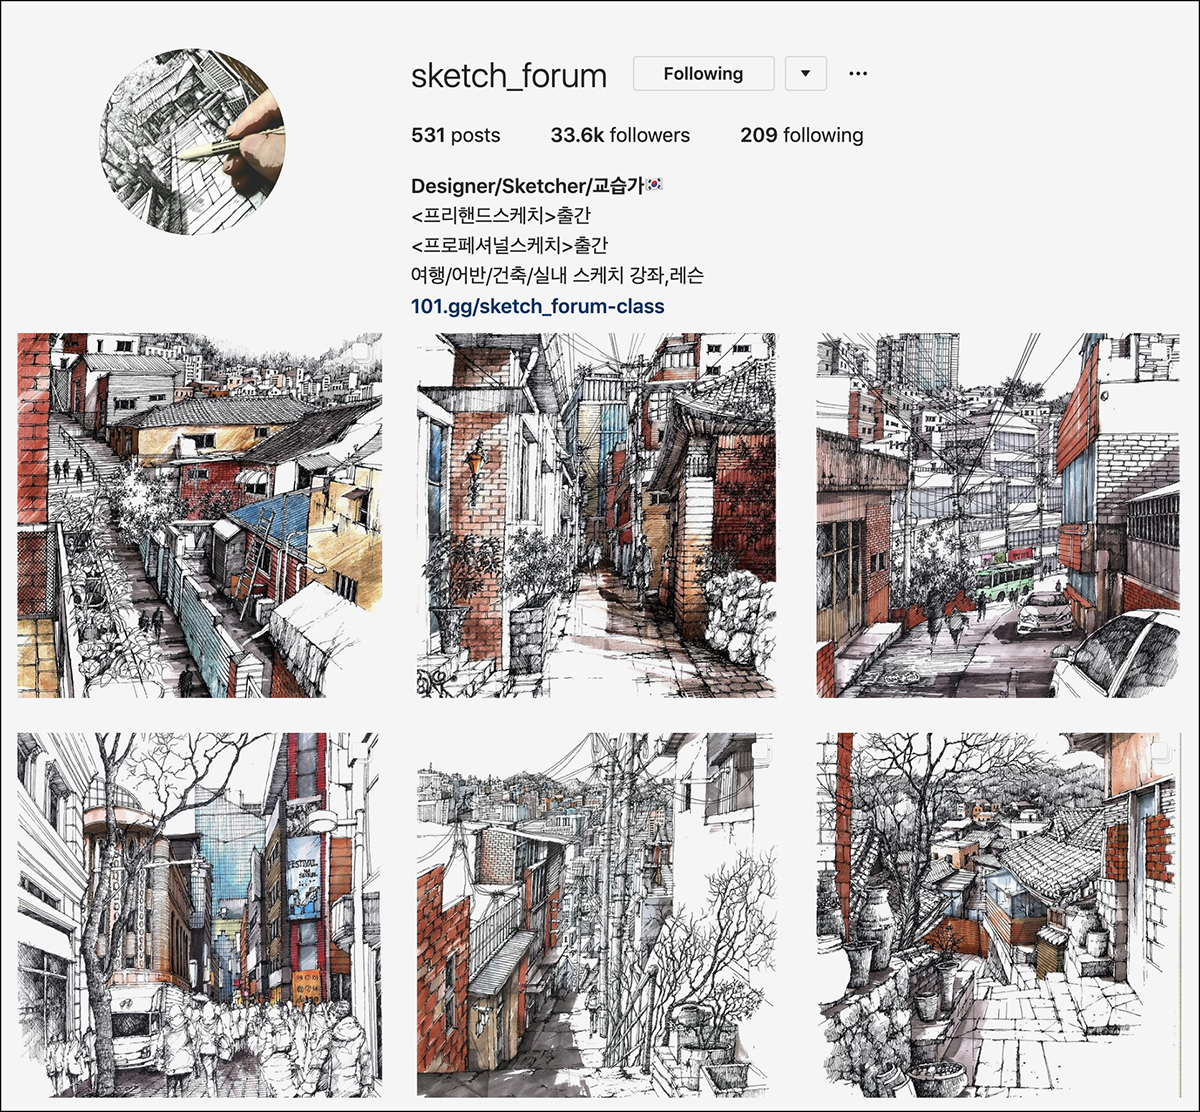 sketch_forum Instagram account - good for sketching